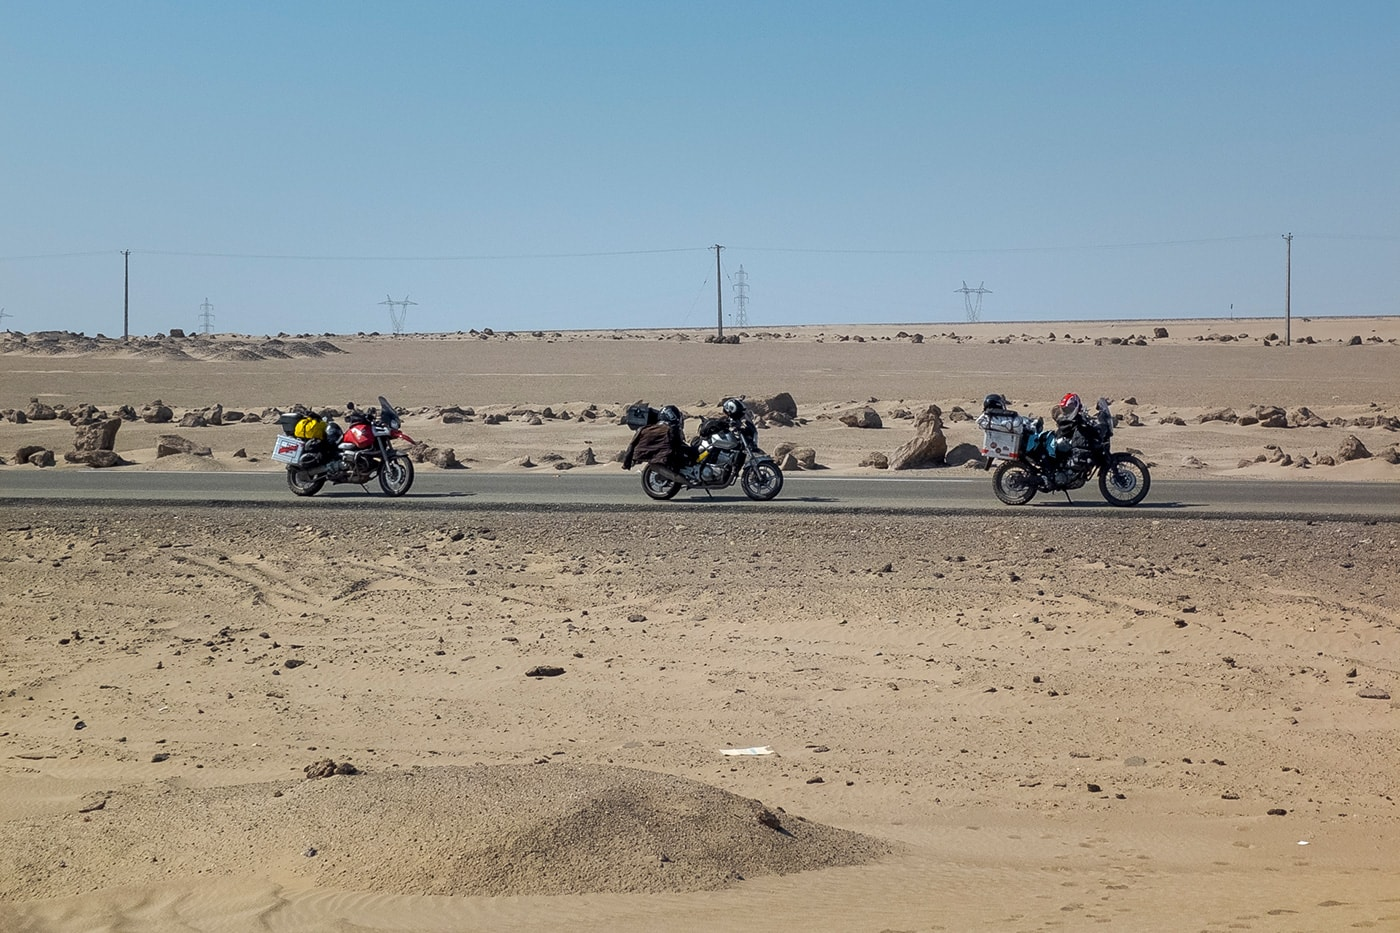 pakistan border crossing moto nel deserto